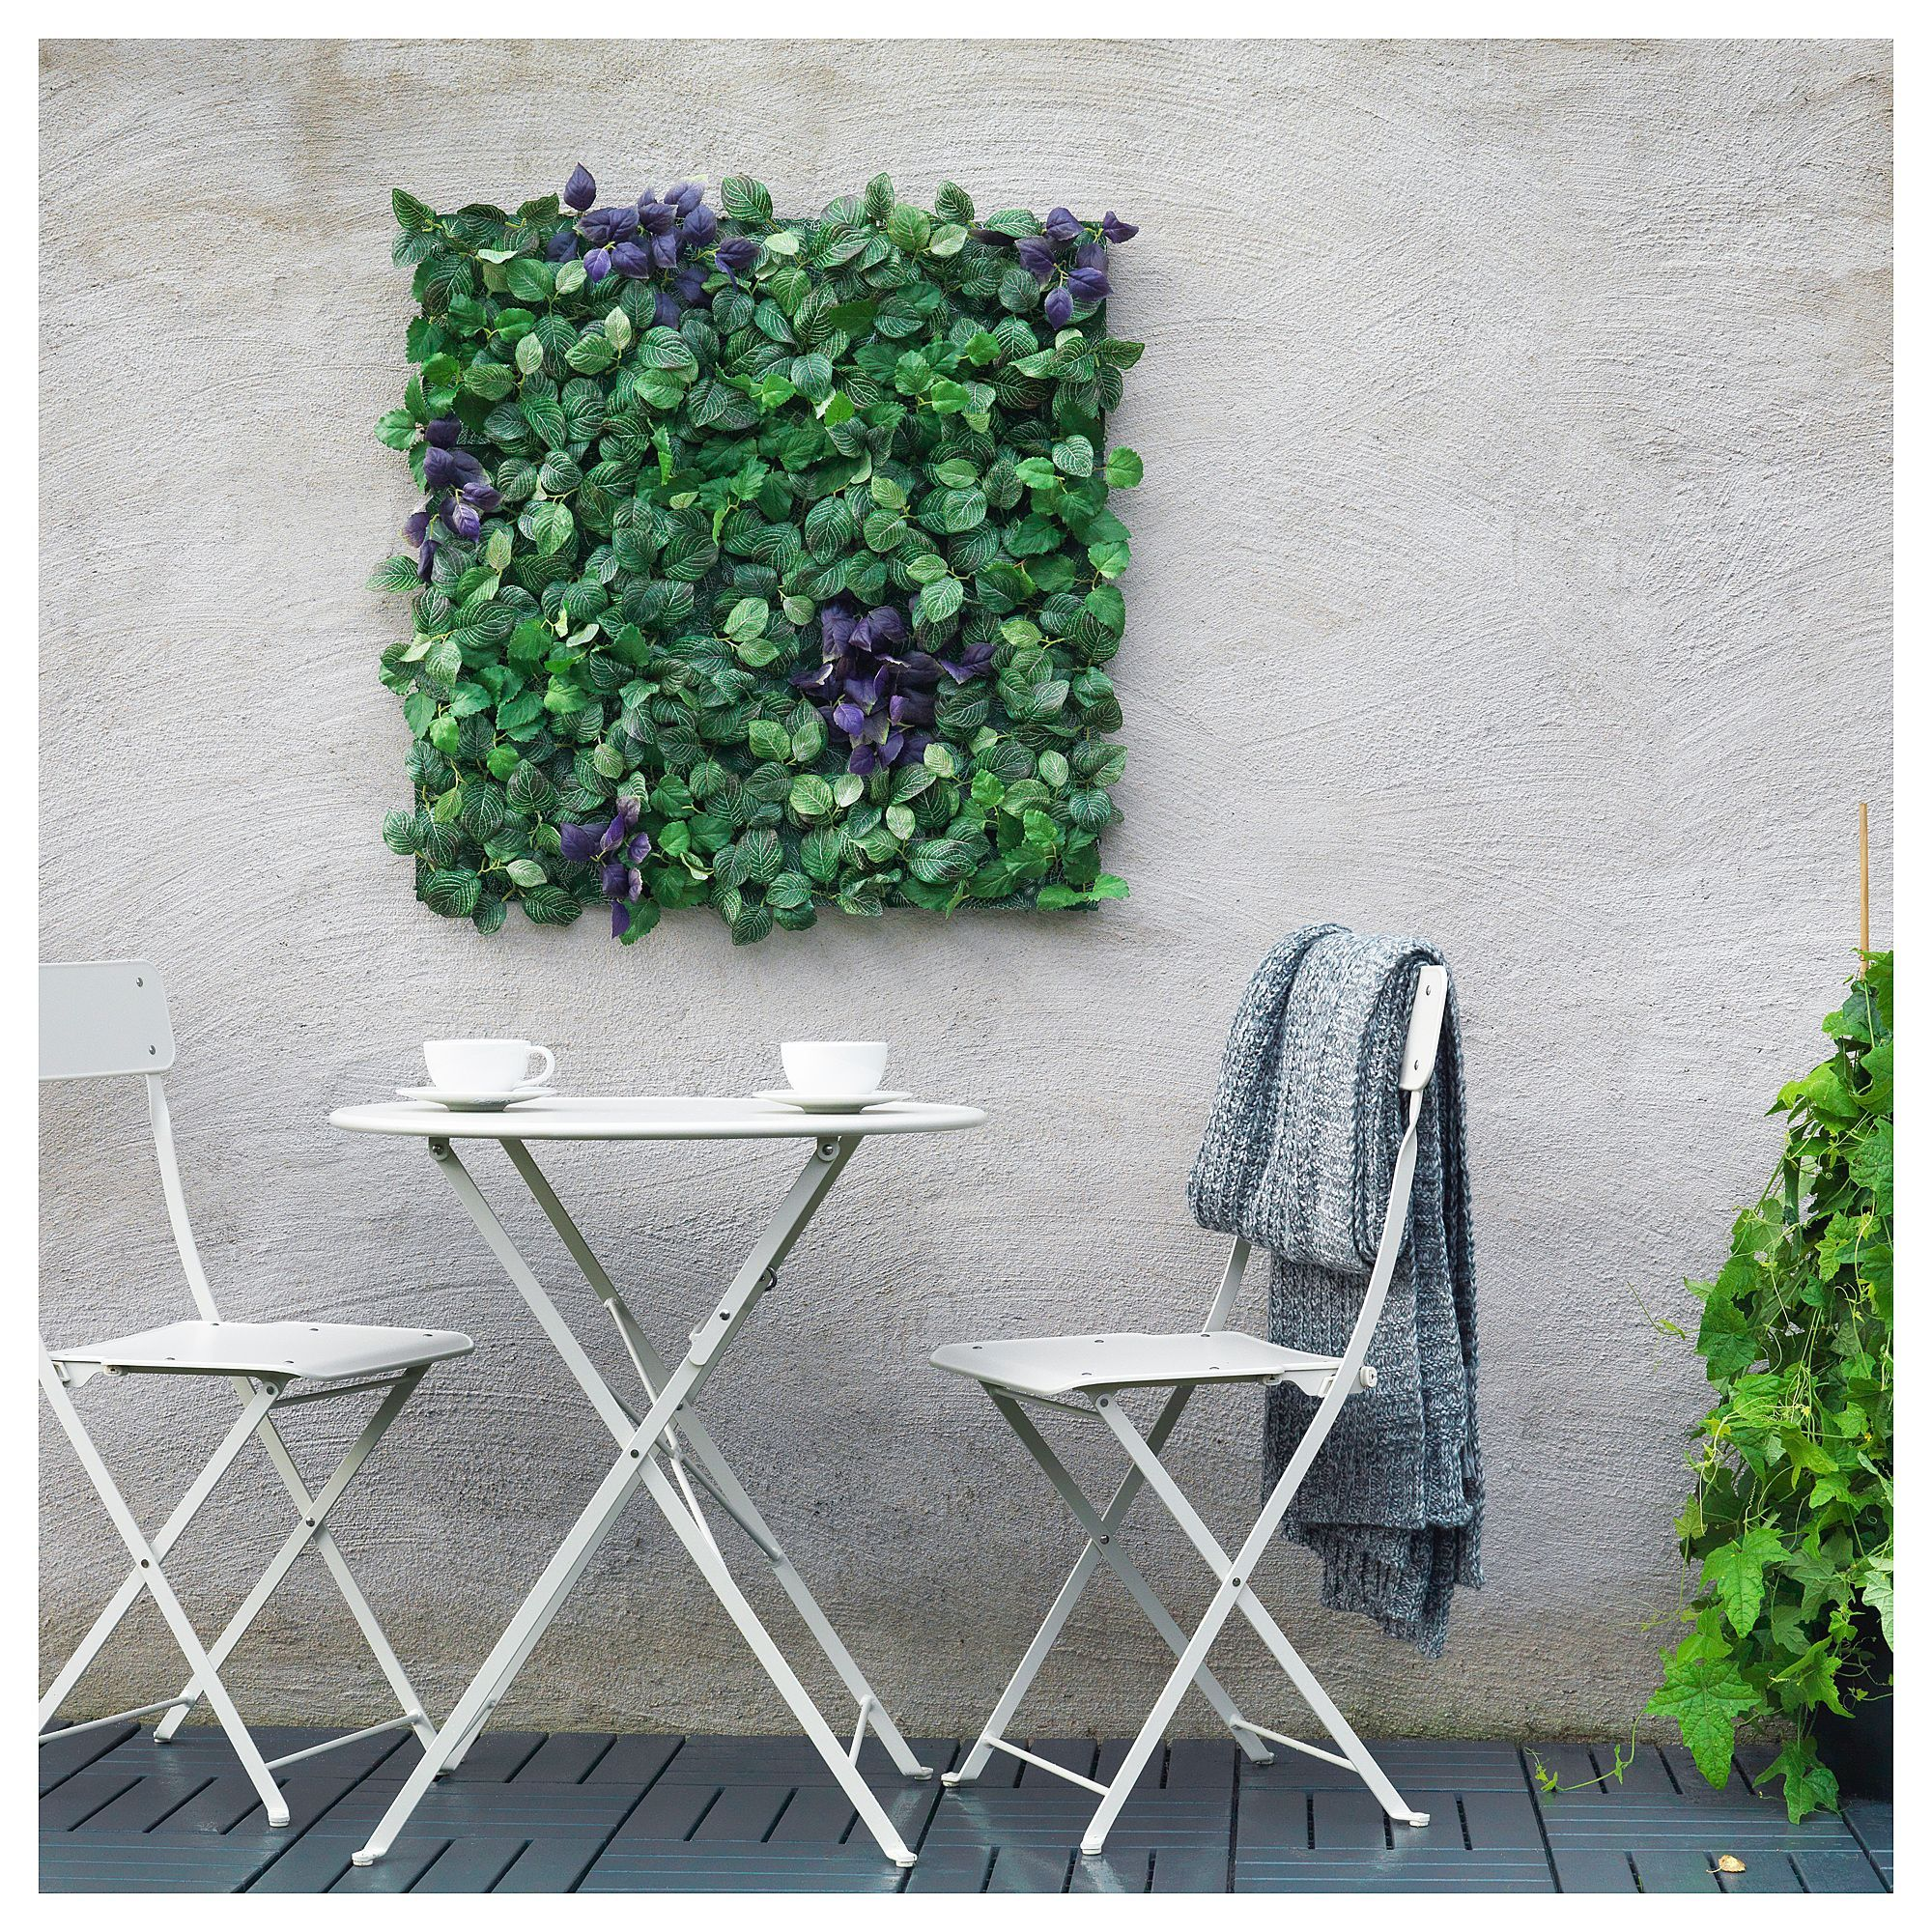 Miraculous diy ideas artificial plants interior artificial garden